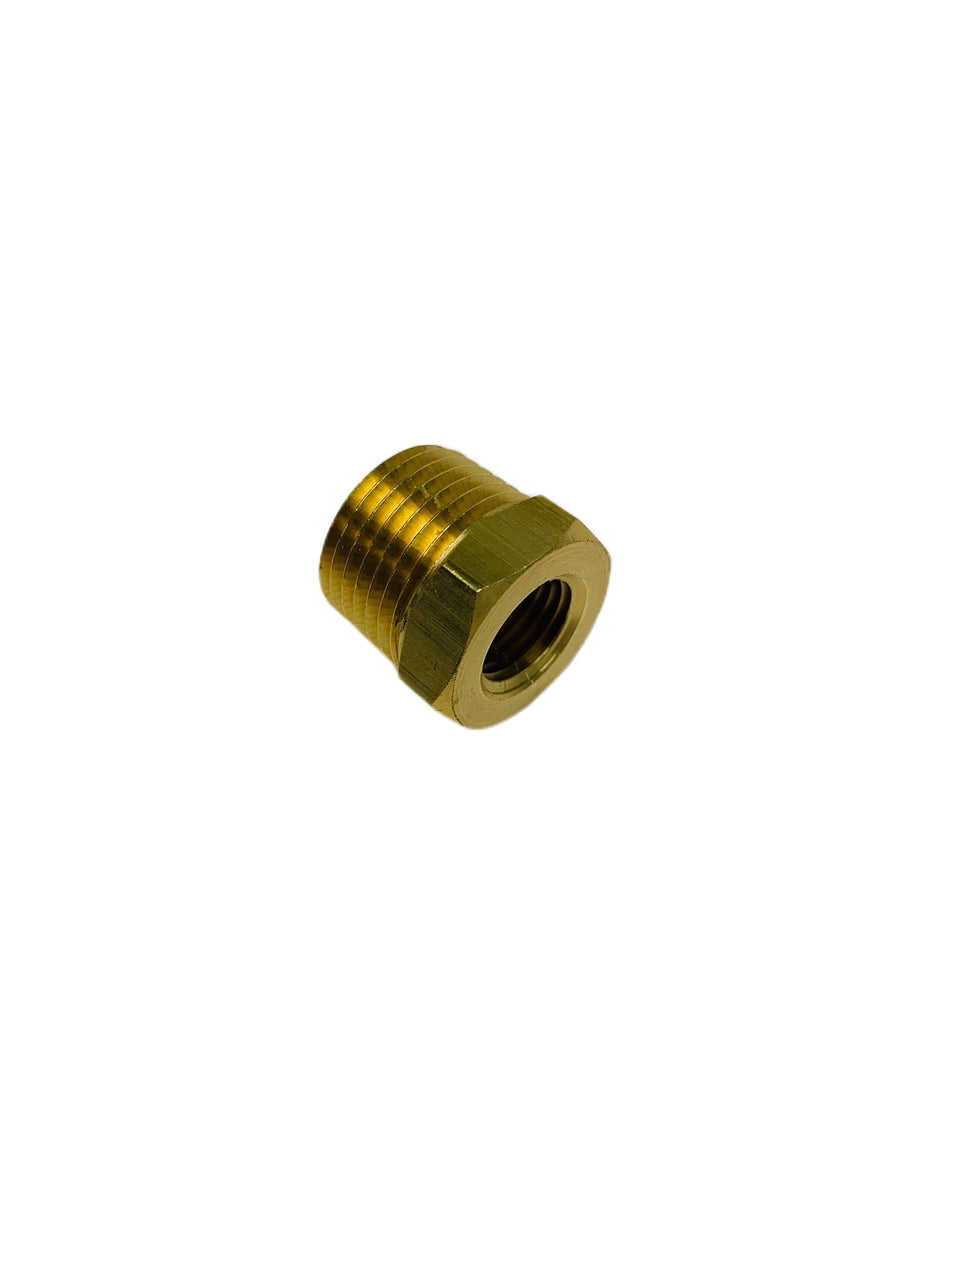 "Brass P-100-128 Female to Male Hex Bushing Pipe 1/2"" x 3/4"" Adapter Fitting"